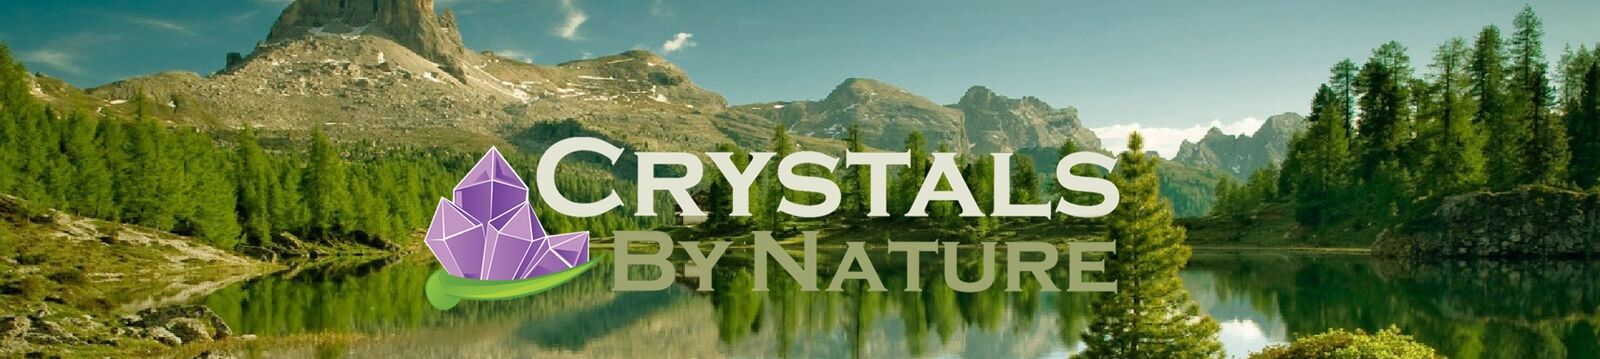 Crystals by Nature Store